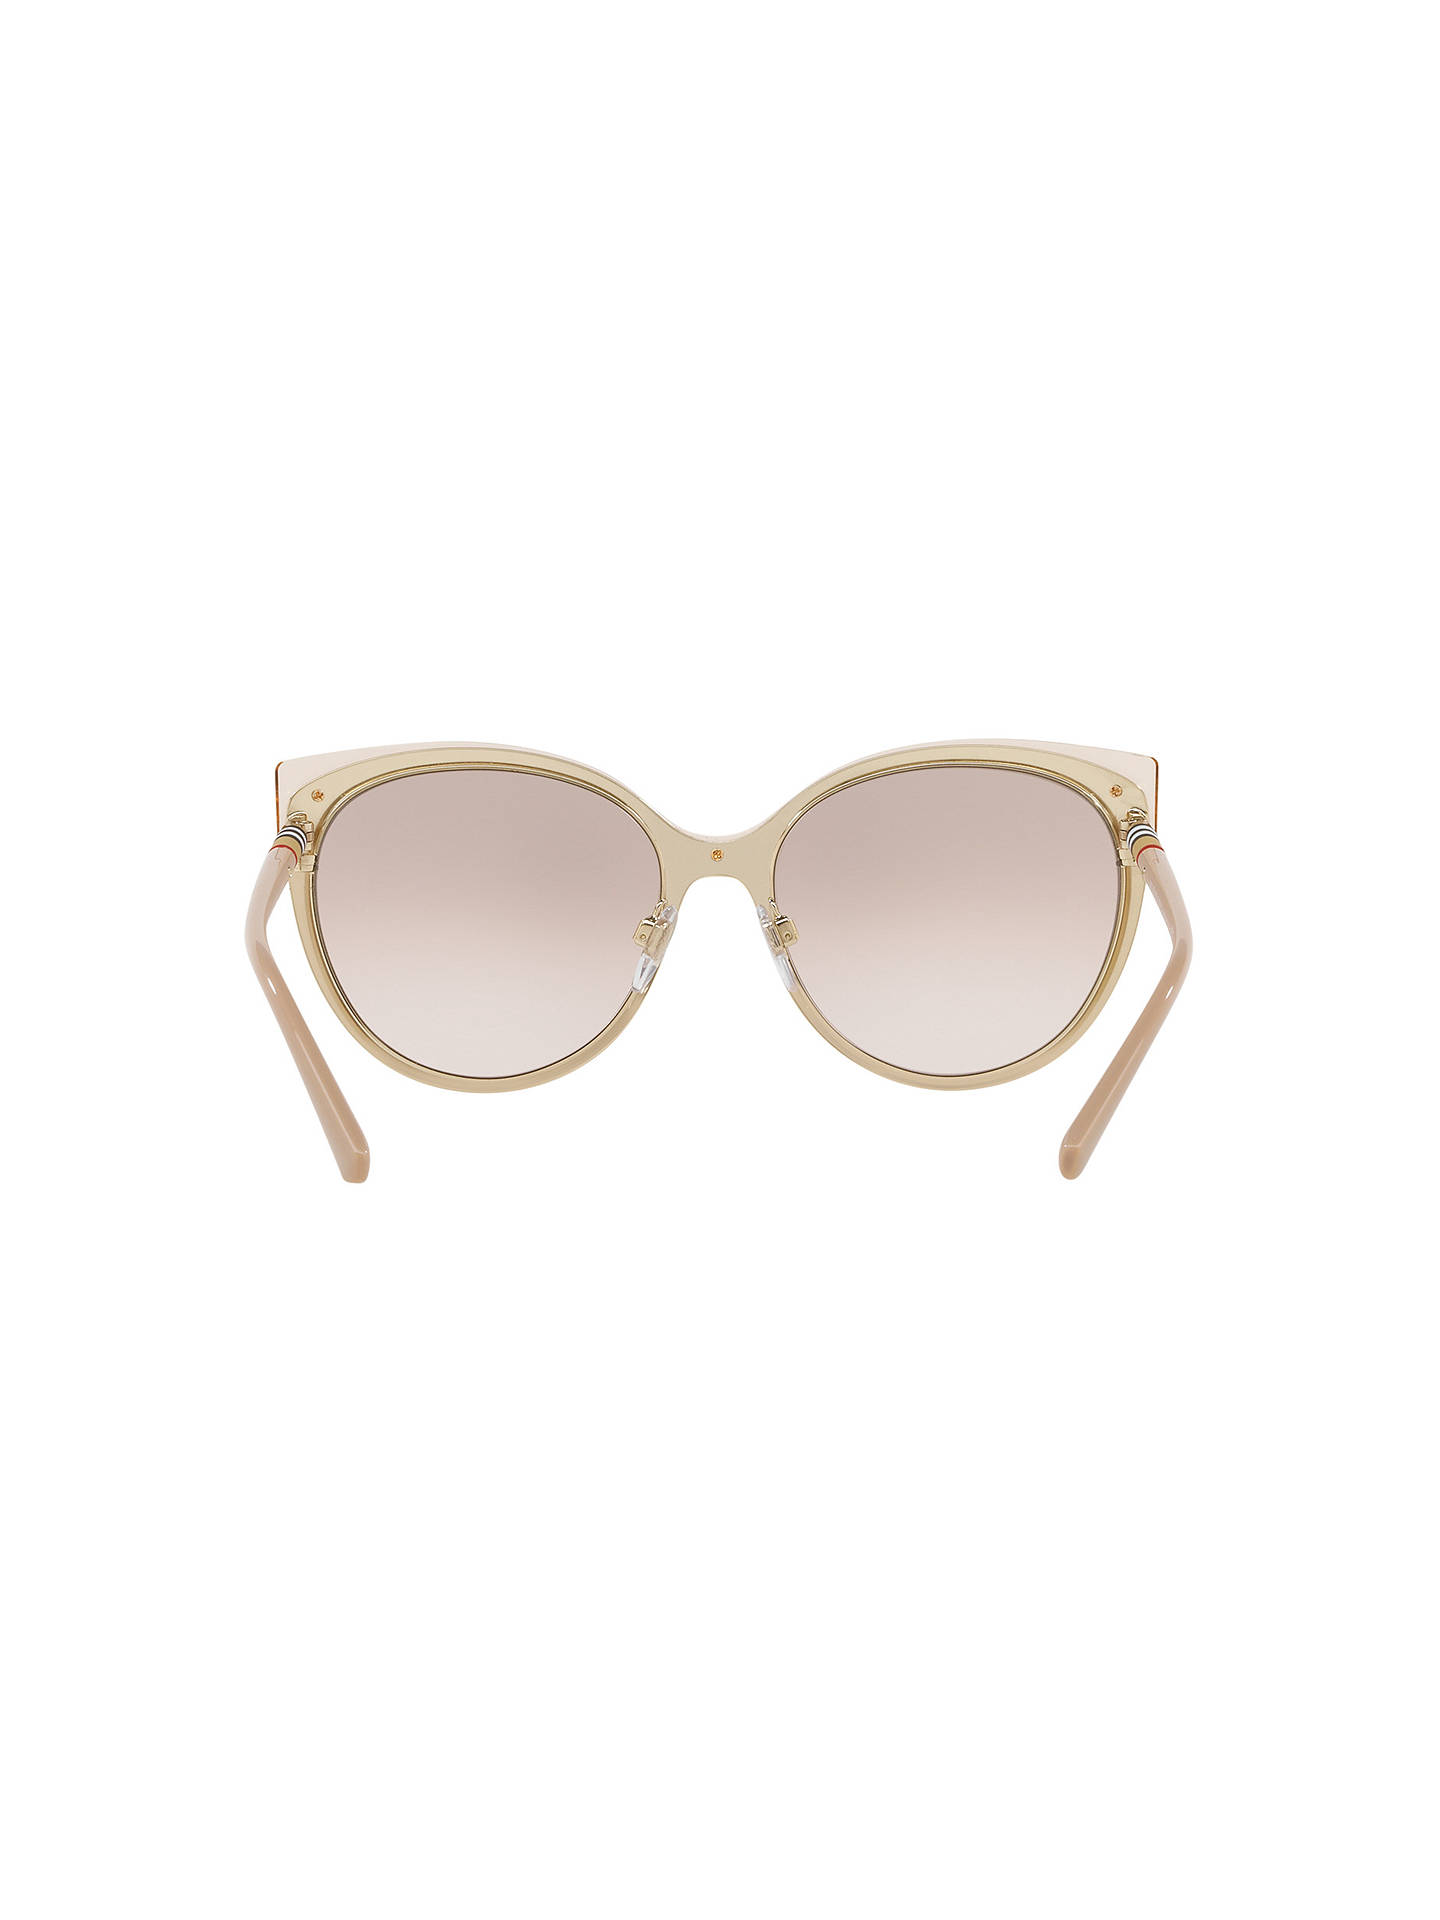 BuyBurberry BE3096 Women's Cat's Eye Sunglasses, Tan/Mirror Gold Online at johnlewis.com